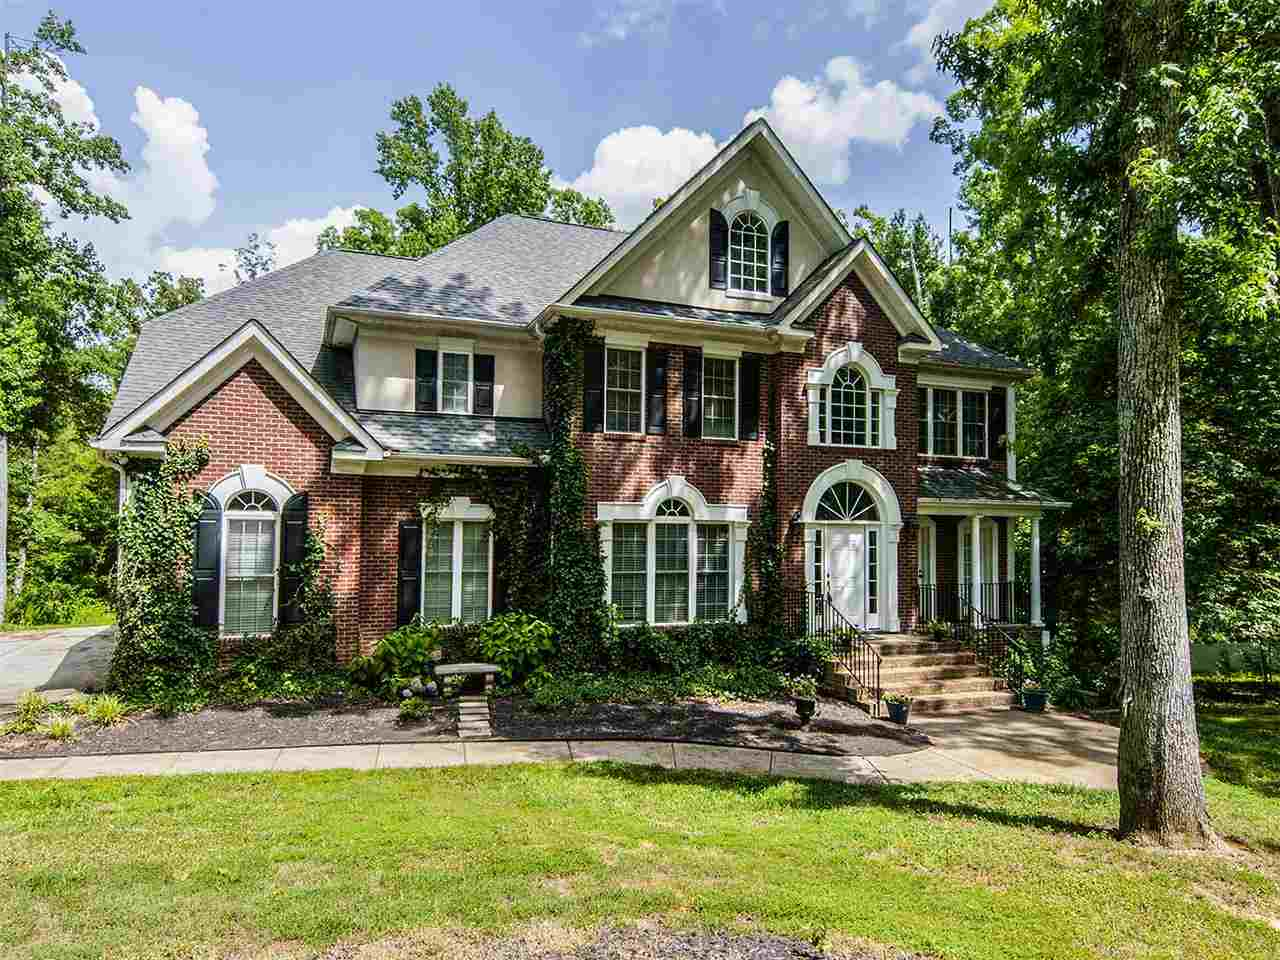 Single Family Home for Sale, ListingId:28897037, location: 1300 BOWATER ROAD Rock Hill 29732